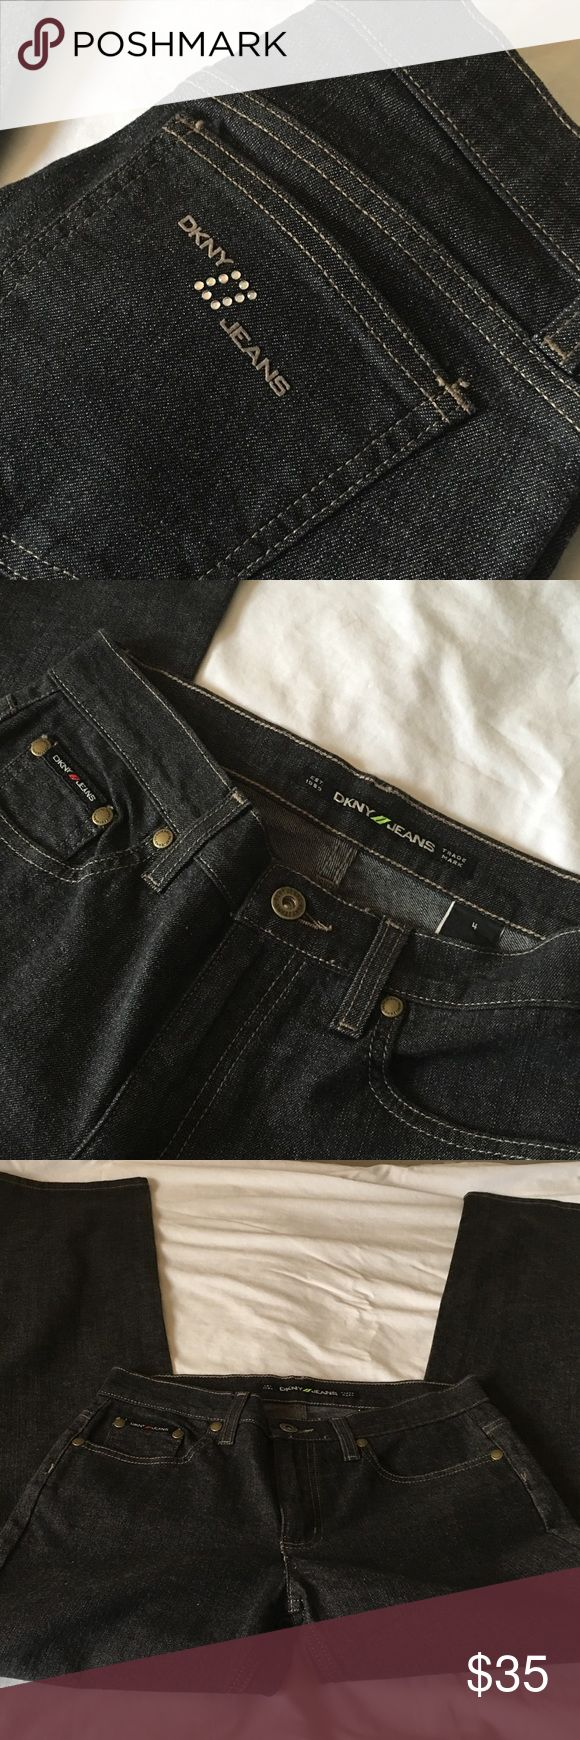 DKNY Black Wash Stretch Boot Cut Jeans Donna Karan Off Black Stretch Boot Cut Jeans. Size 4. 2% spandex. NWOT Never worn. DKNY Jeans Boot Cut